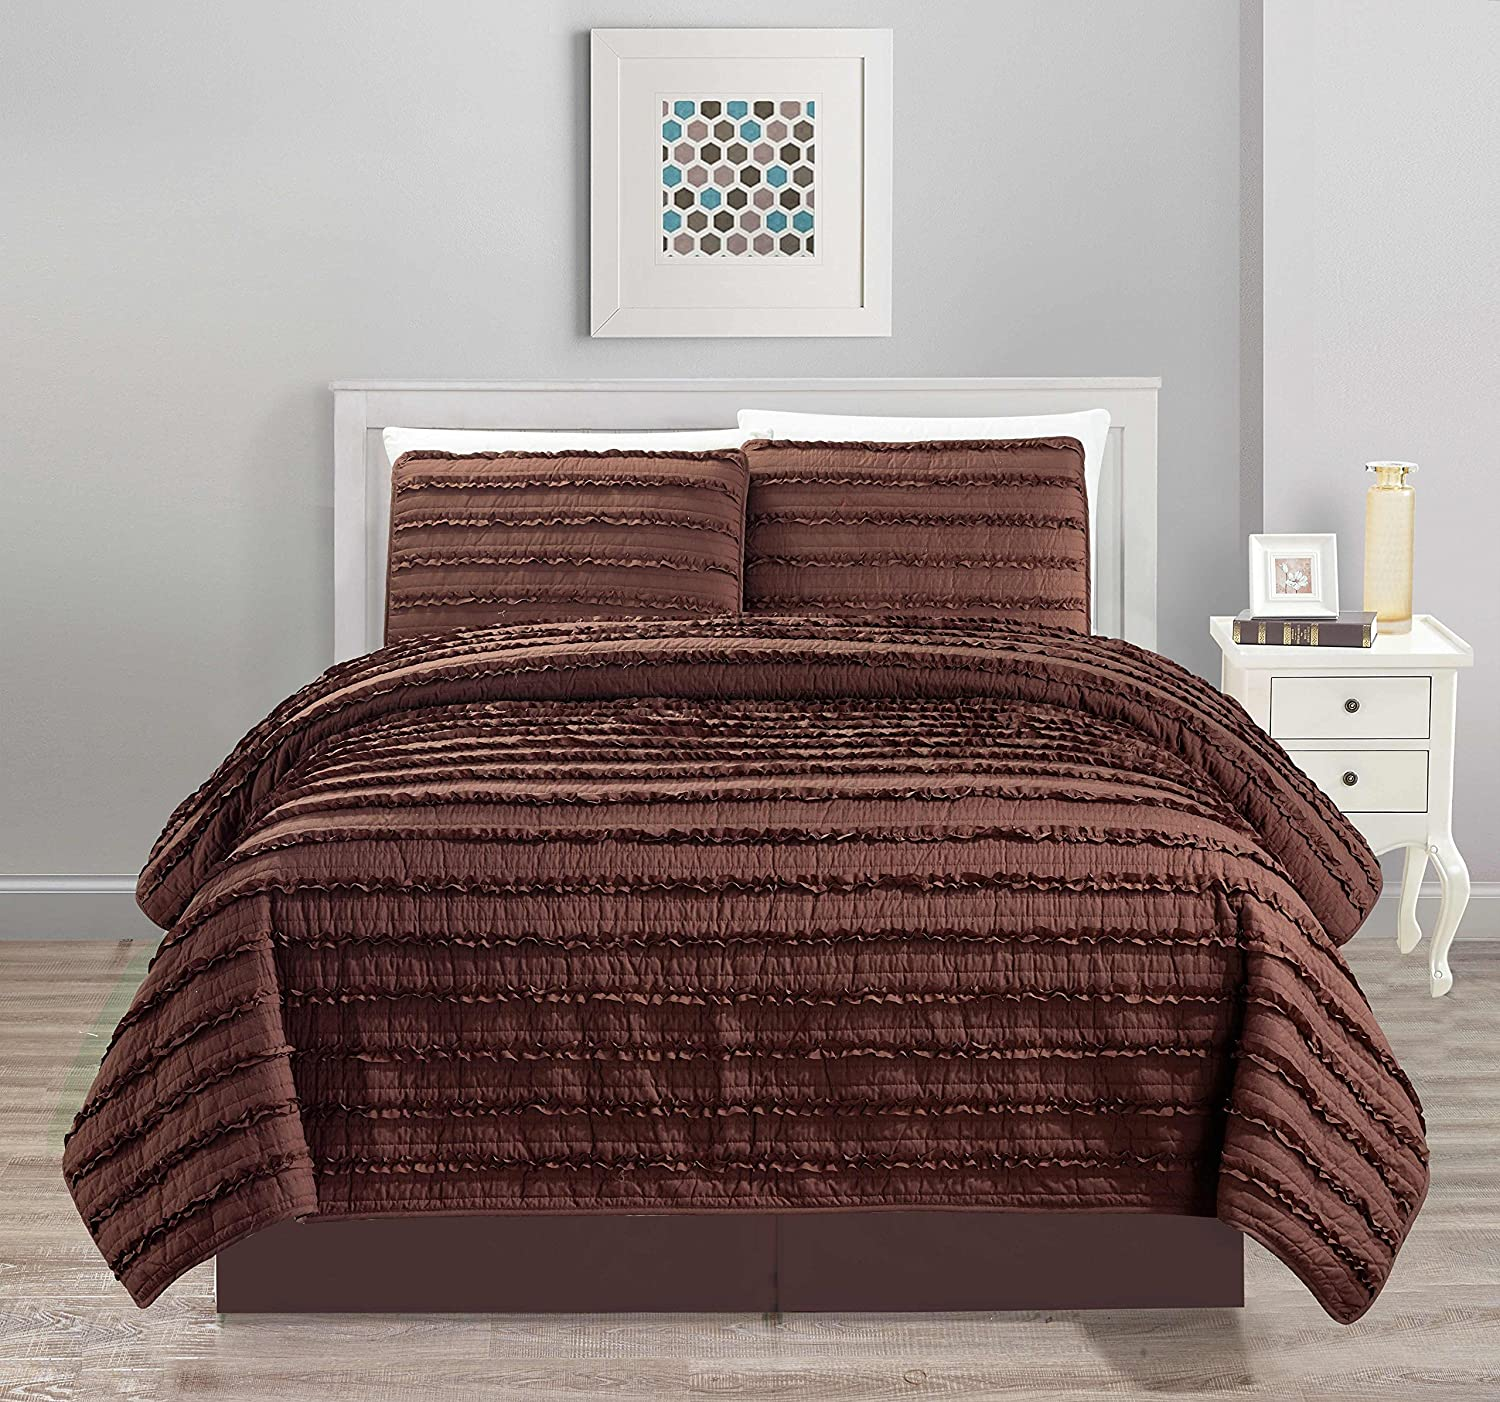 All American All American Collection New 4pc Pleated Ruffle Bedspread/Quilt Set with Bedskirt King Size, Coffee